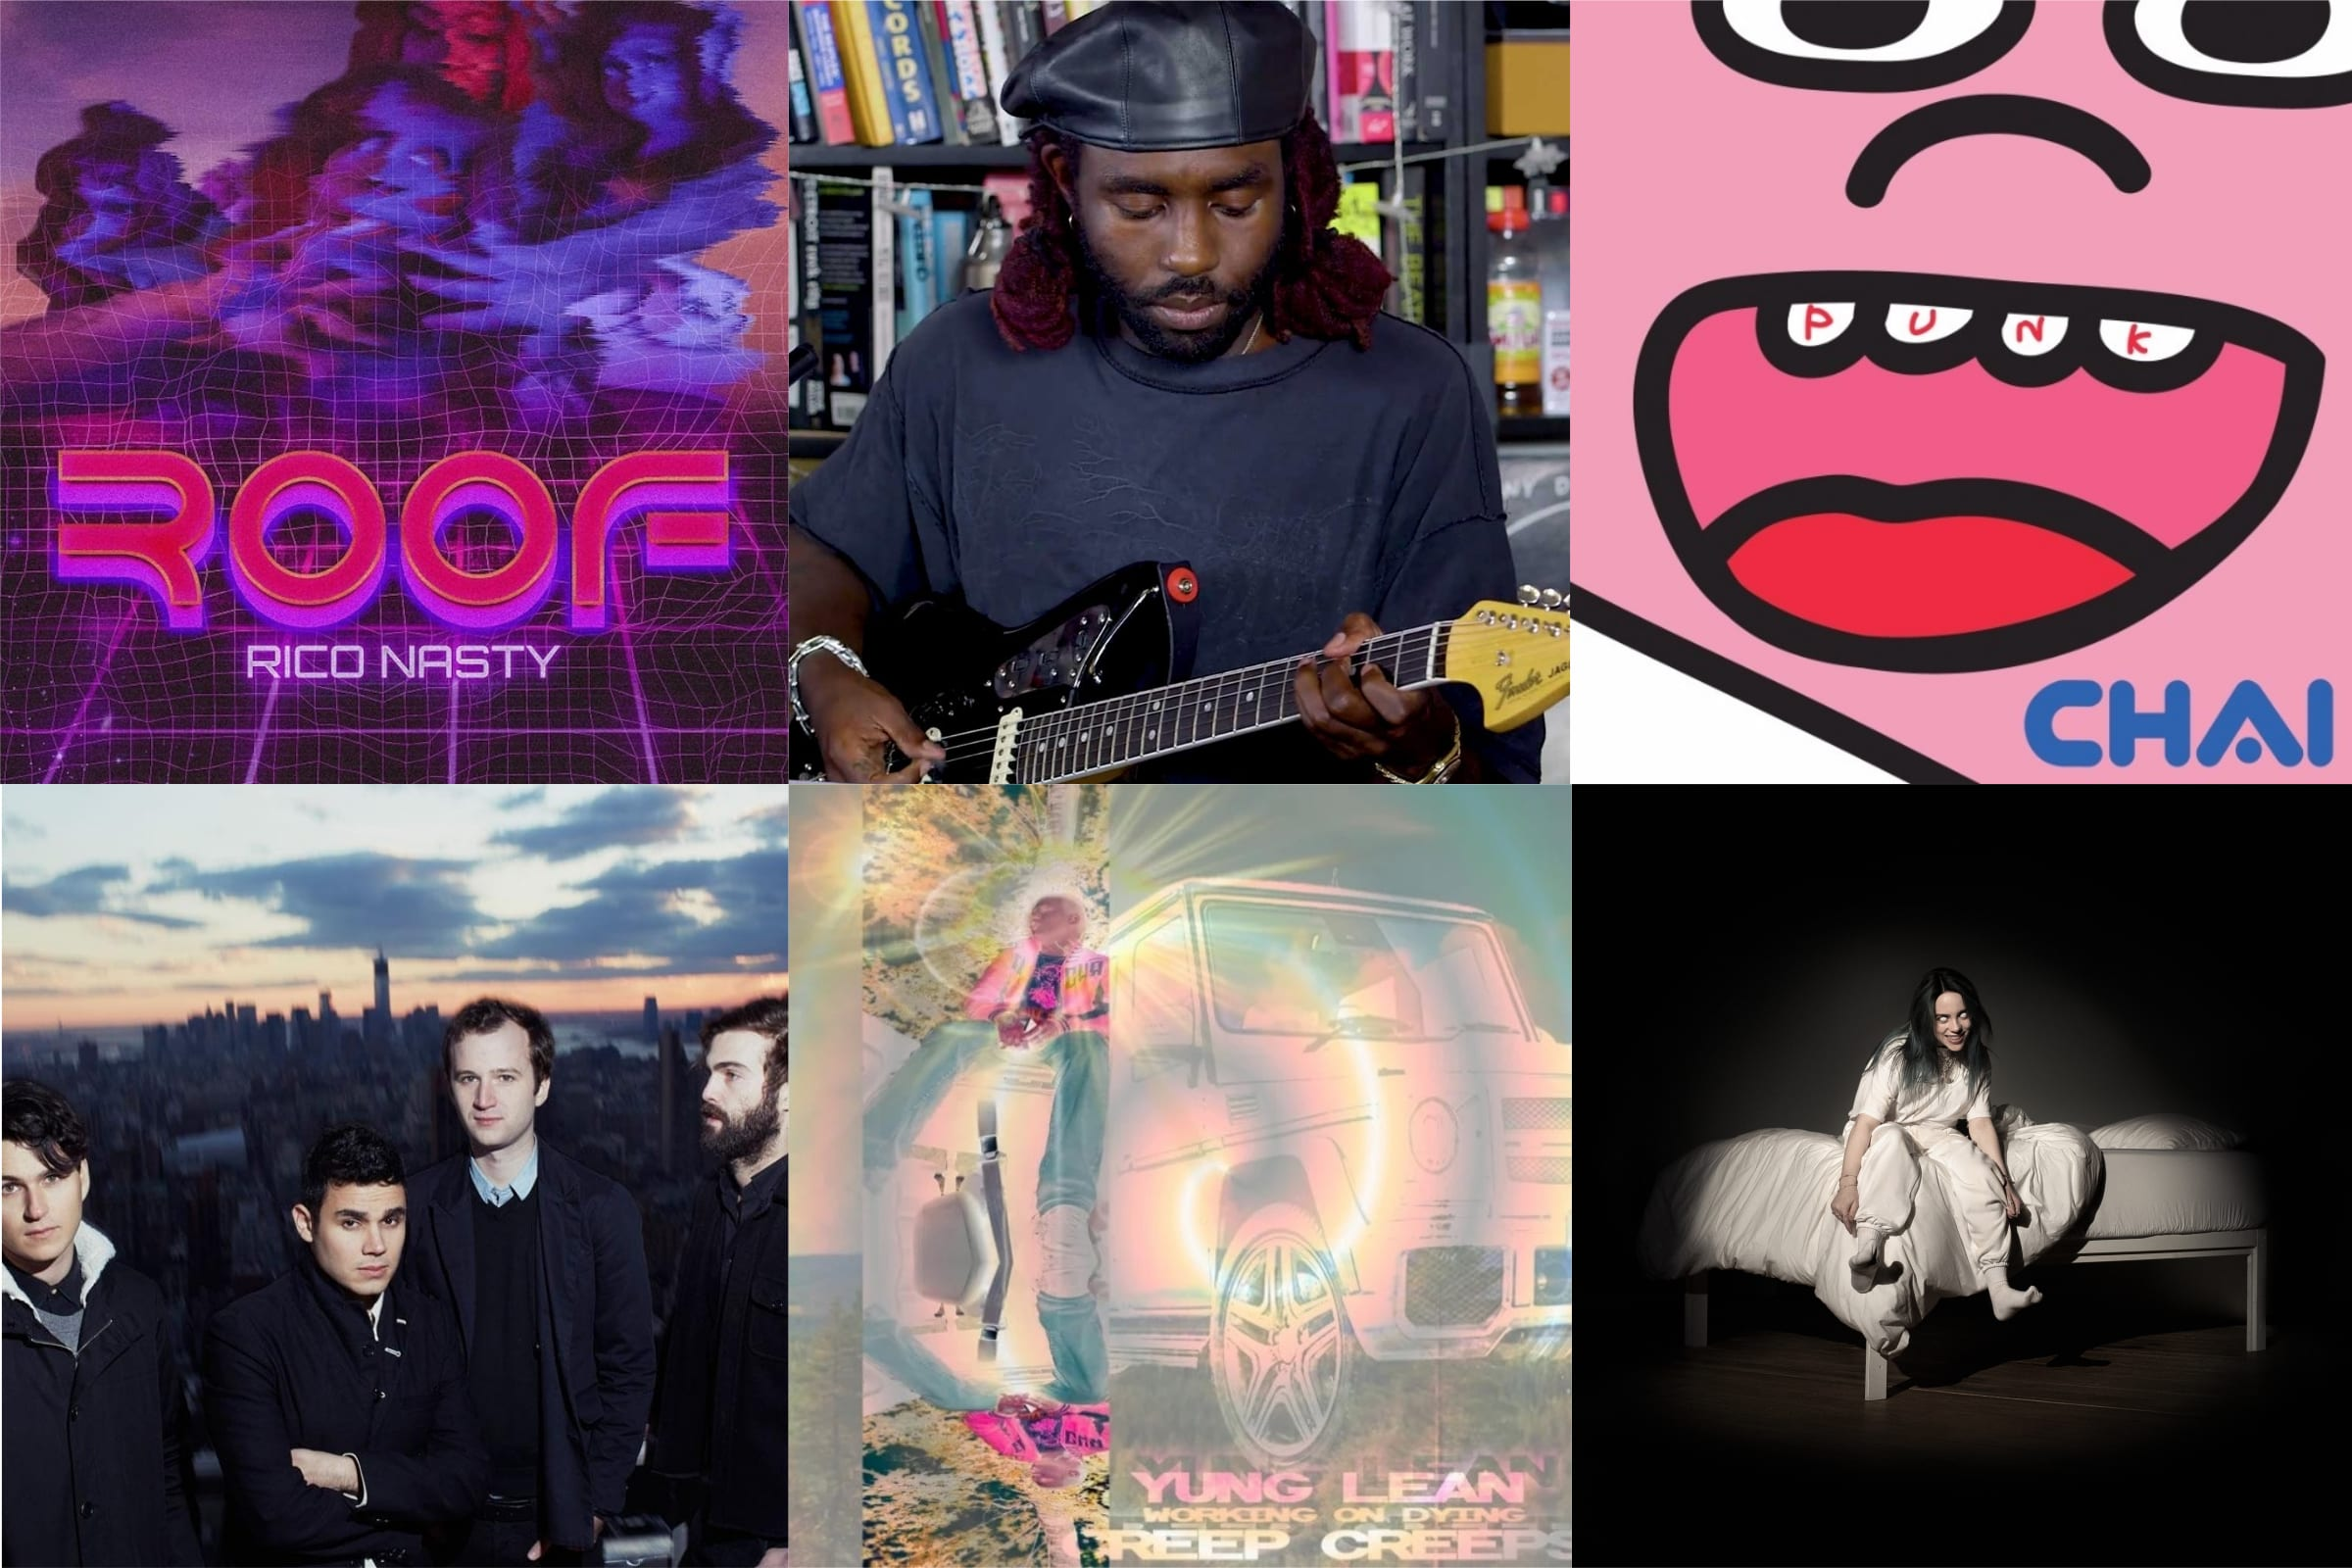 Les Sons De La Semaine : Billie Eillish, Blood Orange, Vampire Weekend, Rico Nasty, Chai Et Yung Lean